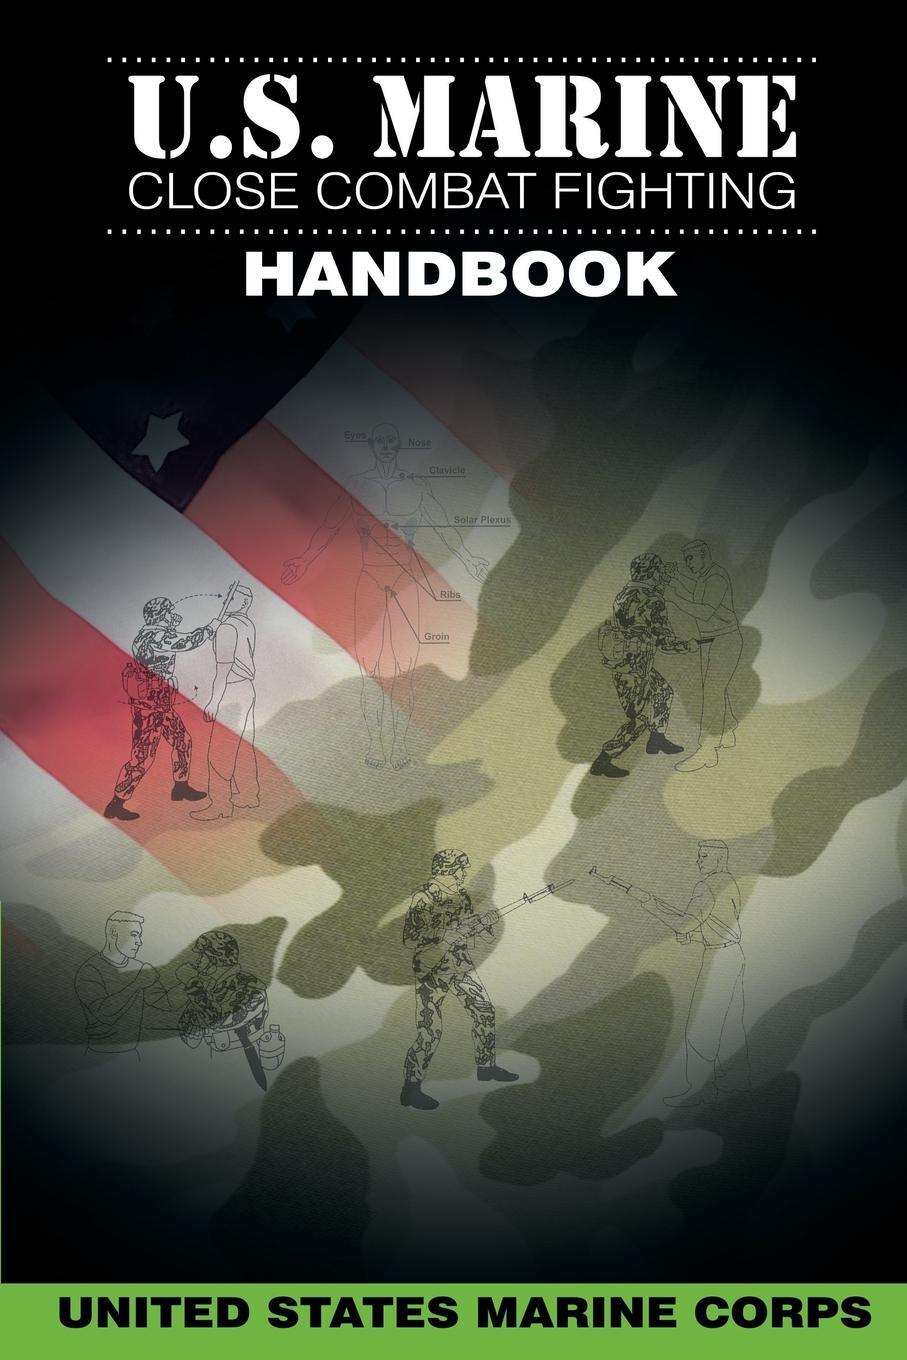 U.S. Marine Close Combat Fighting Handbook. United States Marine Corps